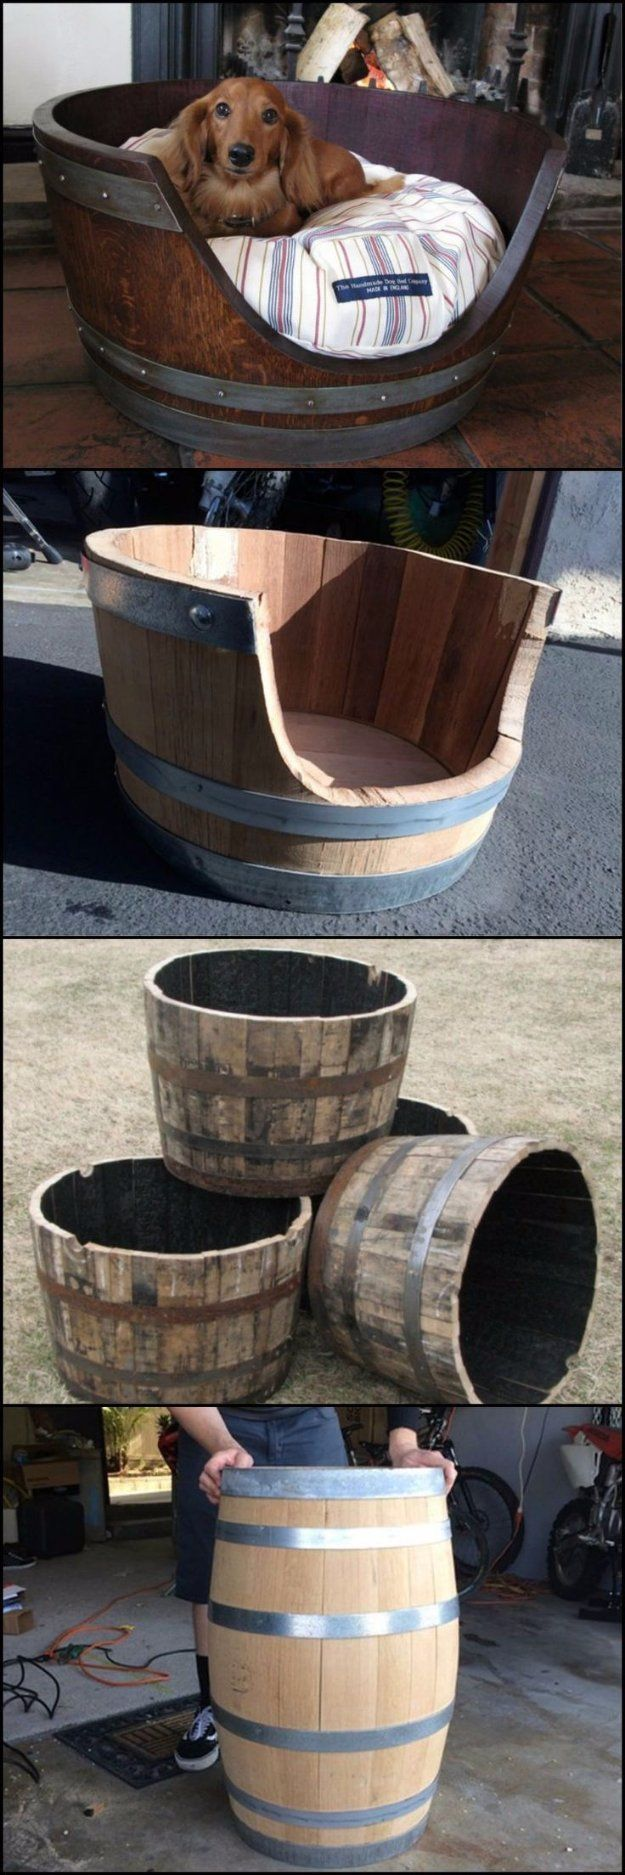 DIY Dog Beds - DIY Wine Barrel Dog Bed - Projects and Ideas for Large, Medium and Small Dogs. Cute and Easy No Sew Crafts for Your Pets. Pallet, Crate, PVC and End Table Dog Bed Tutorials http://diyjo